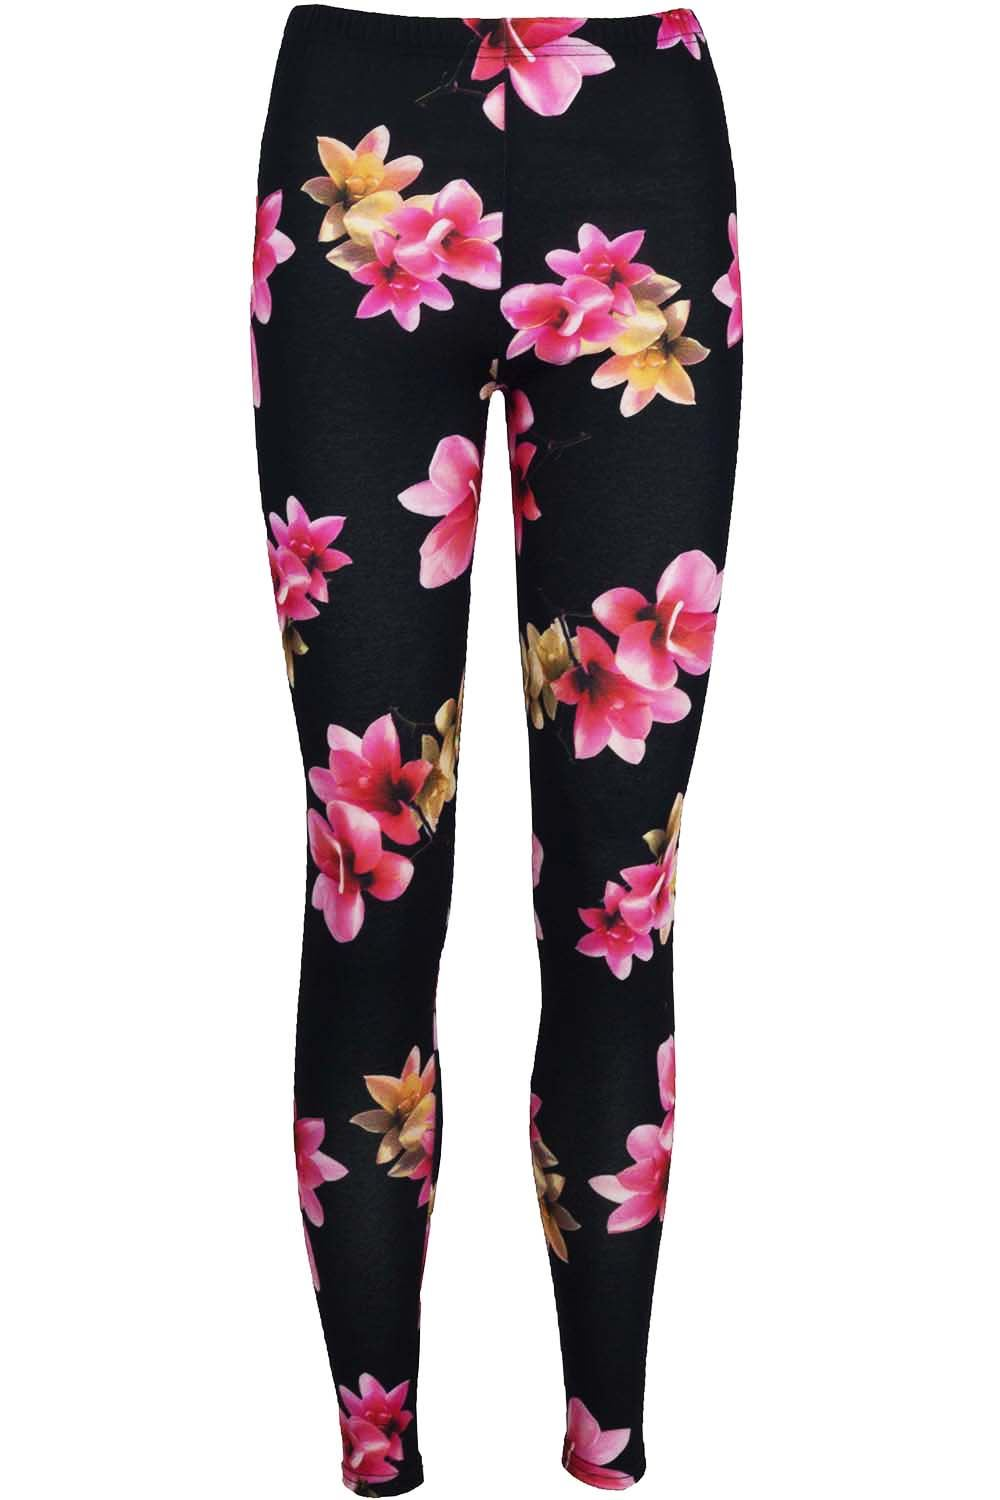 Womens Ladies Floral Roses Printed Stretchy Full Ankle Length Jegging Leggings